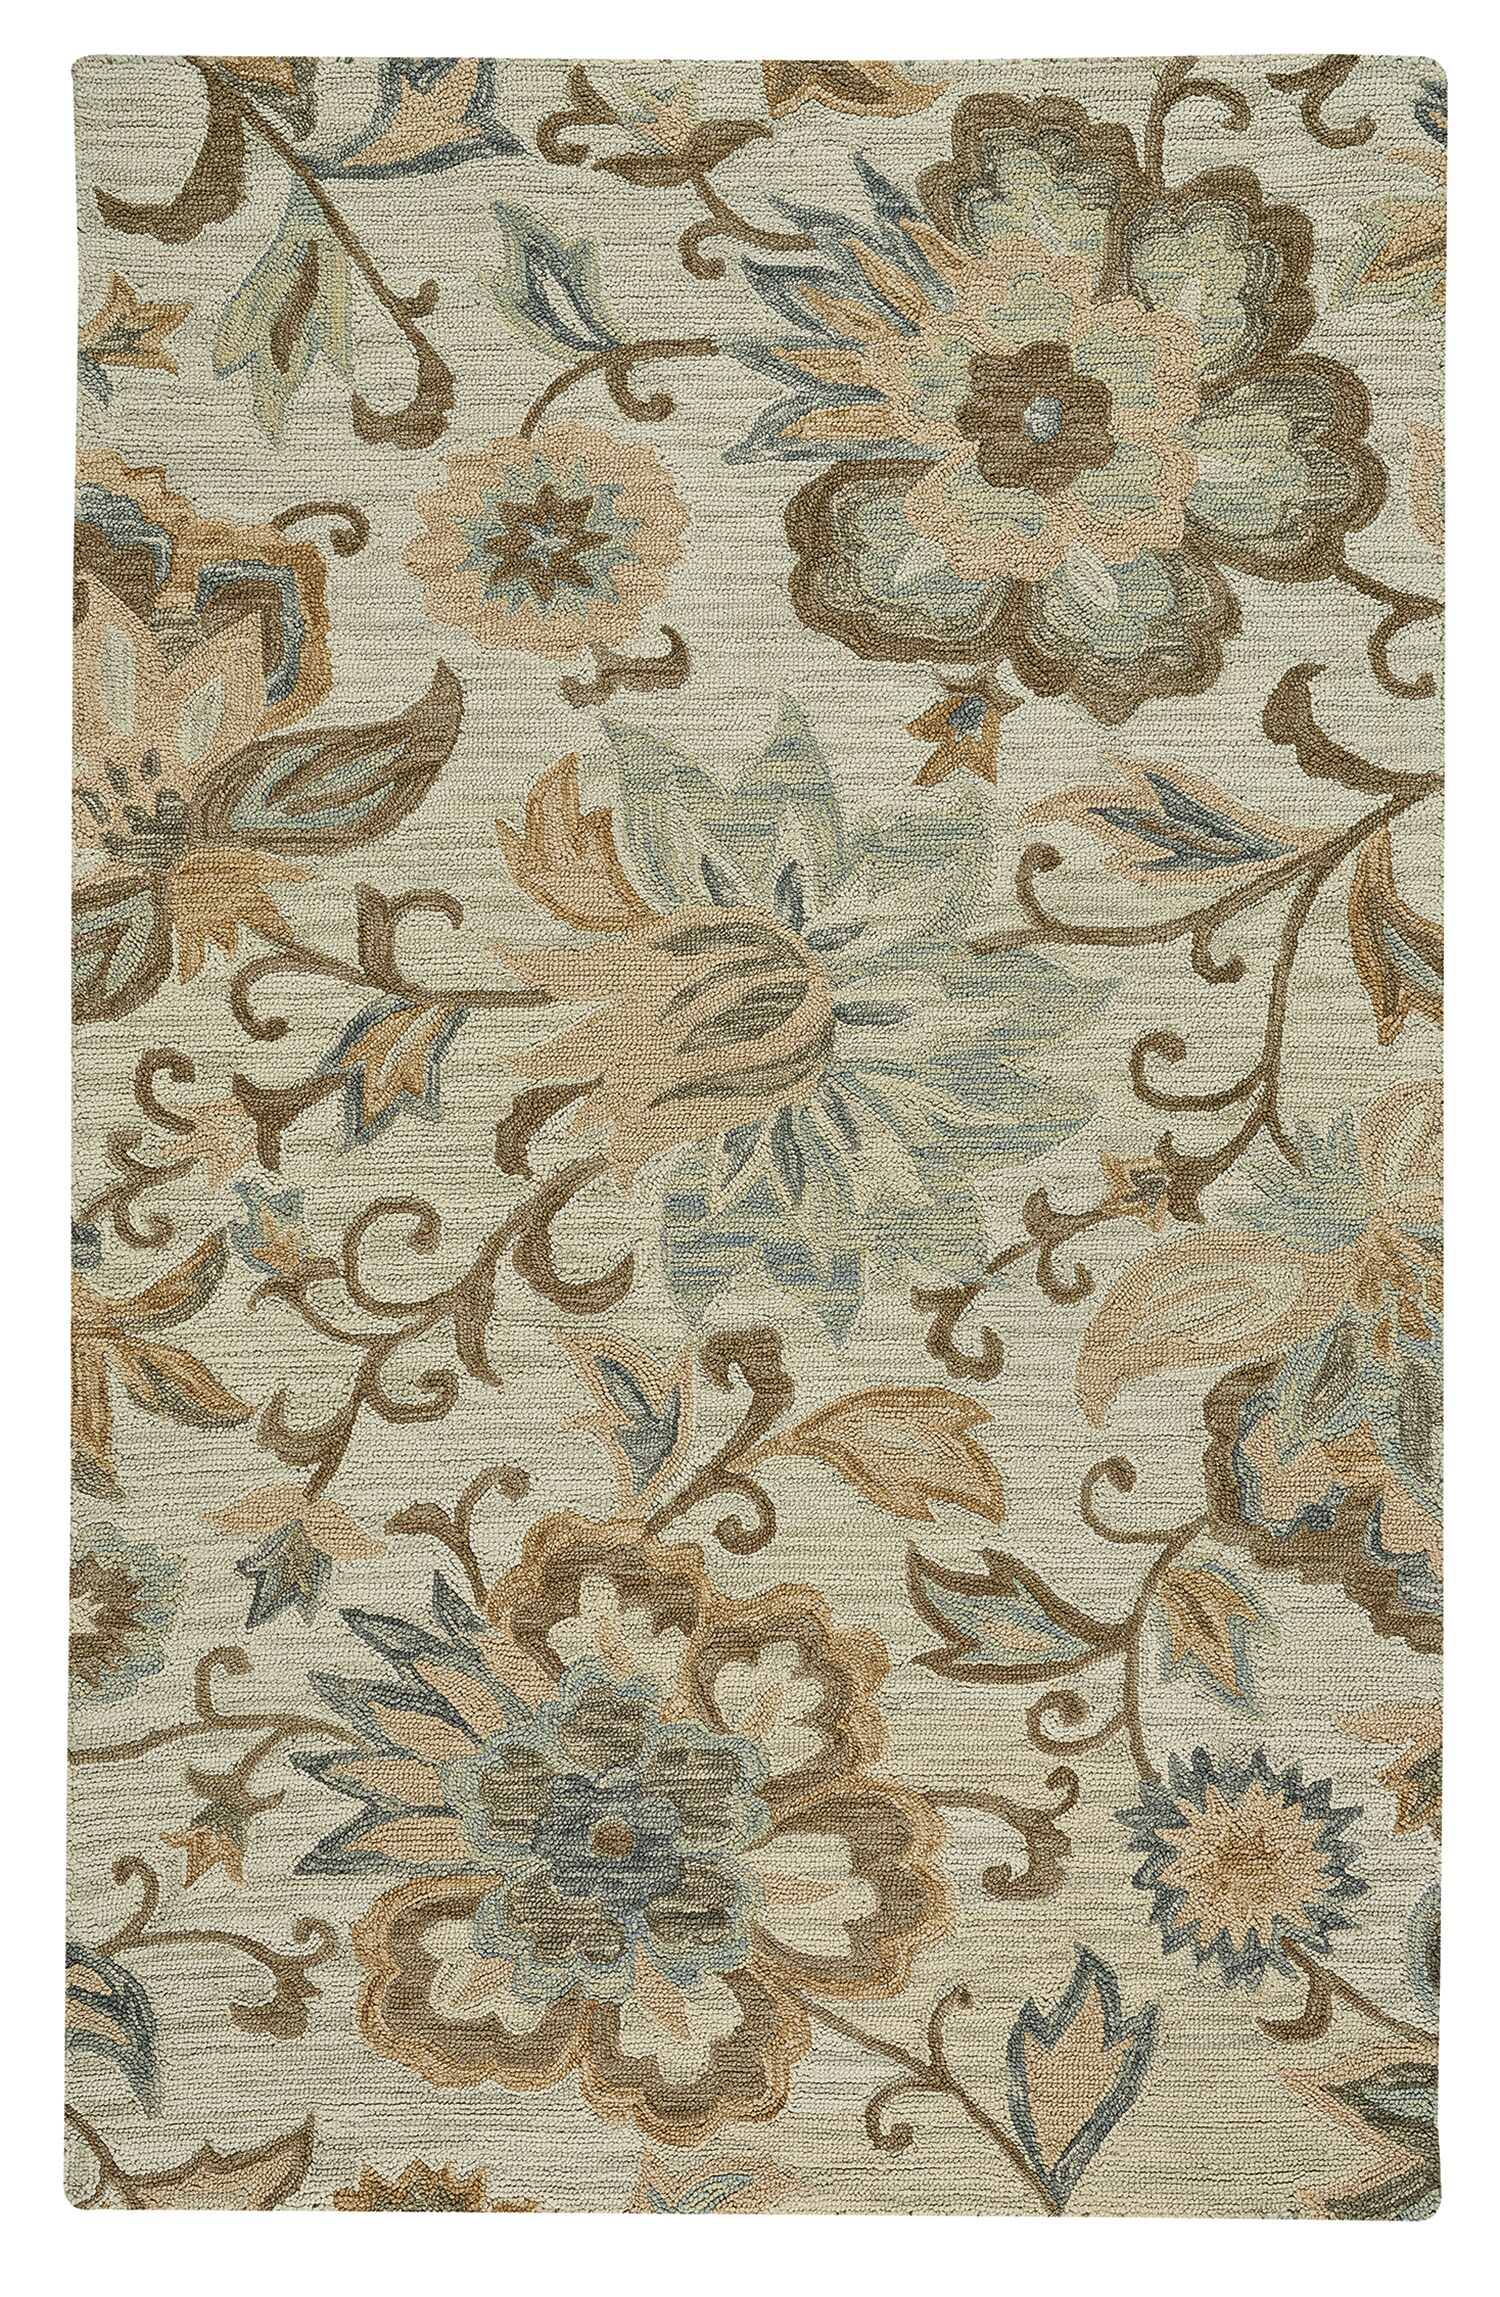 Birch Hill Traditional Hand-Tufted Wool Beige Area Rug Rug Size: 3'6